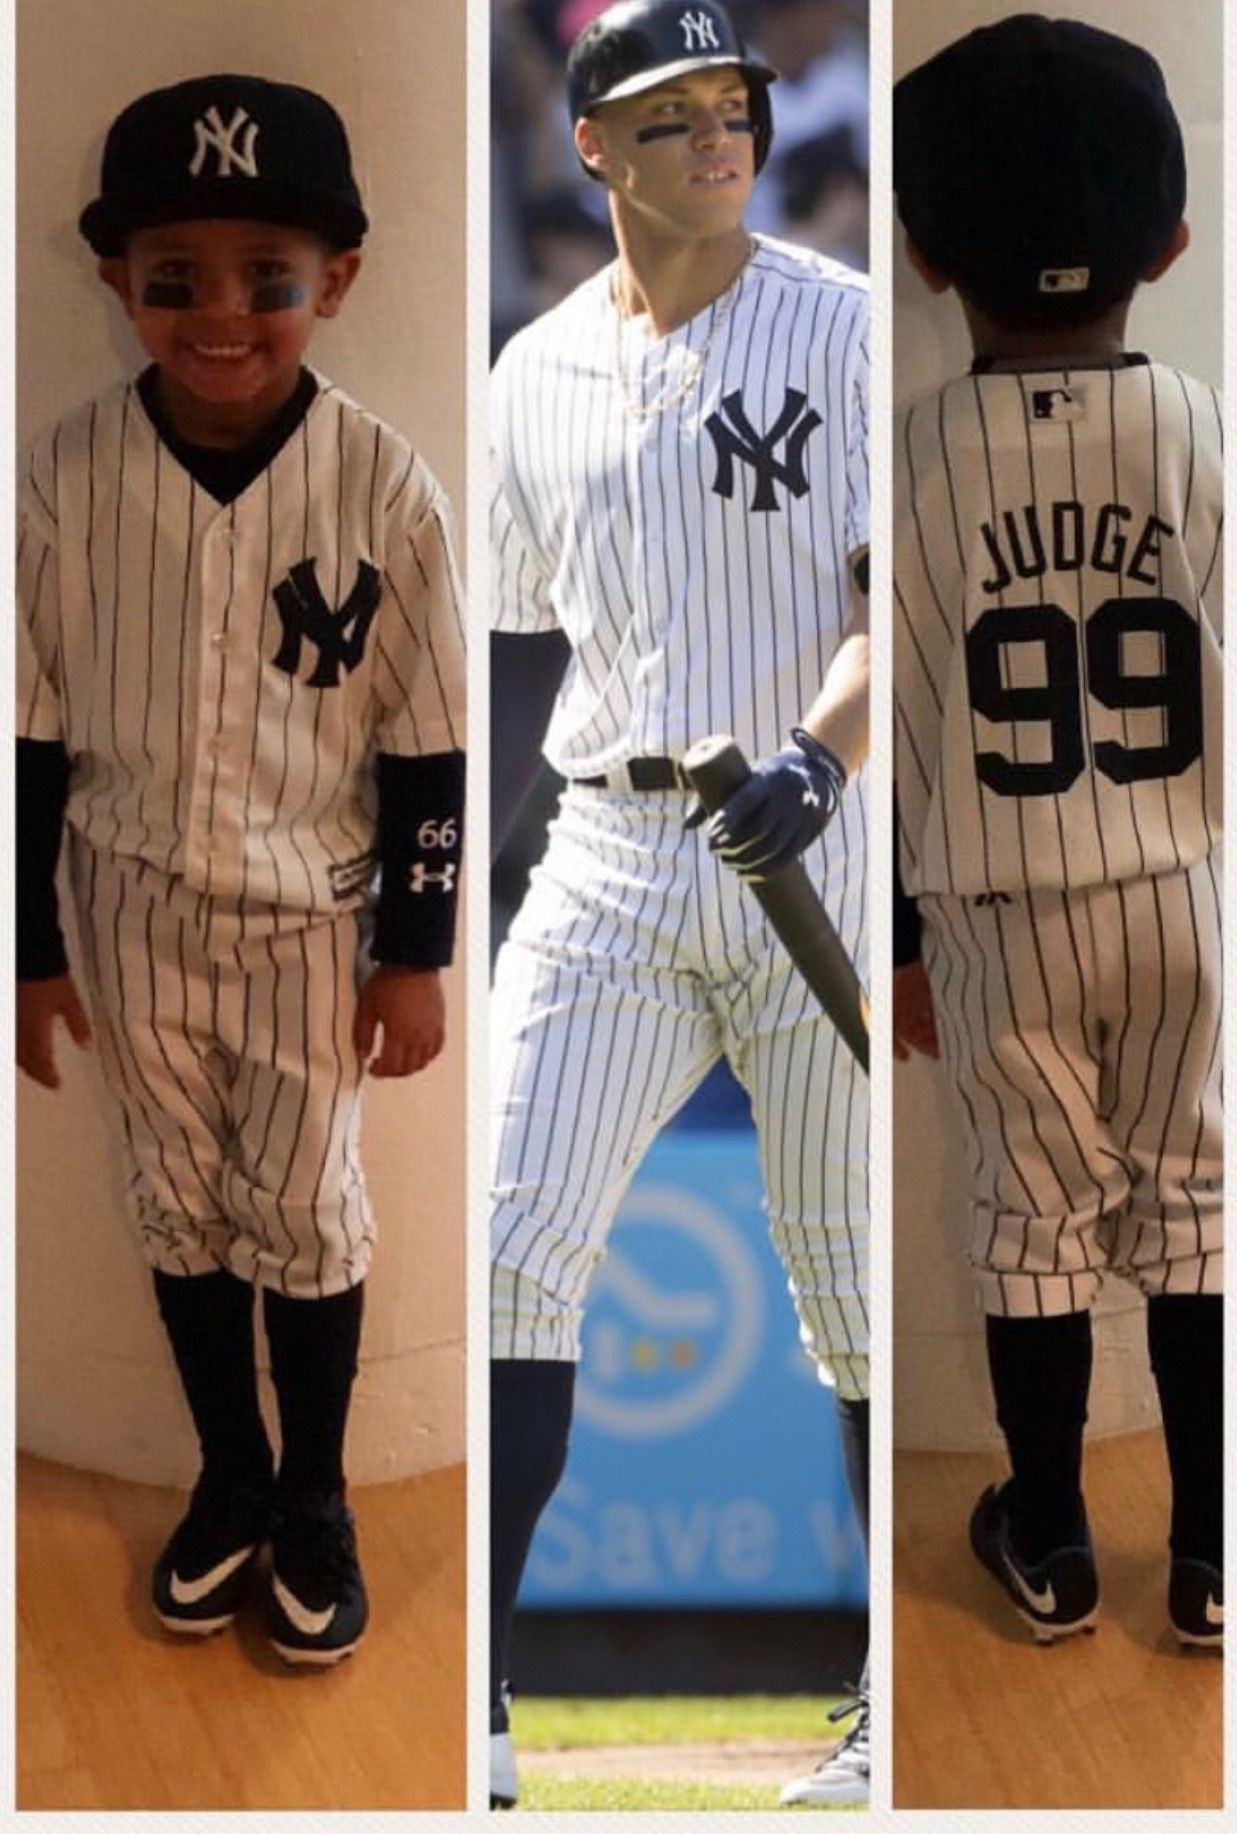 derek jeter's nephew jalen dressed up in his halloween costume as